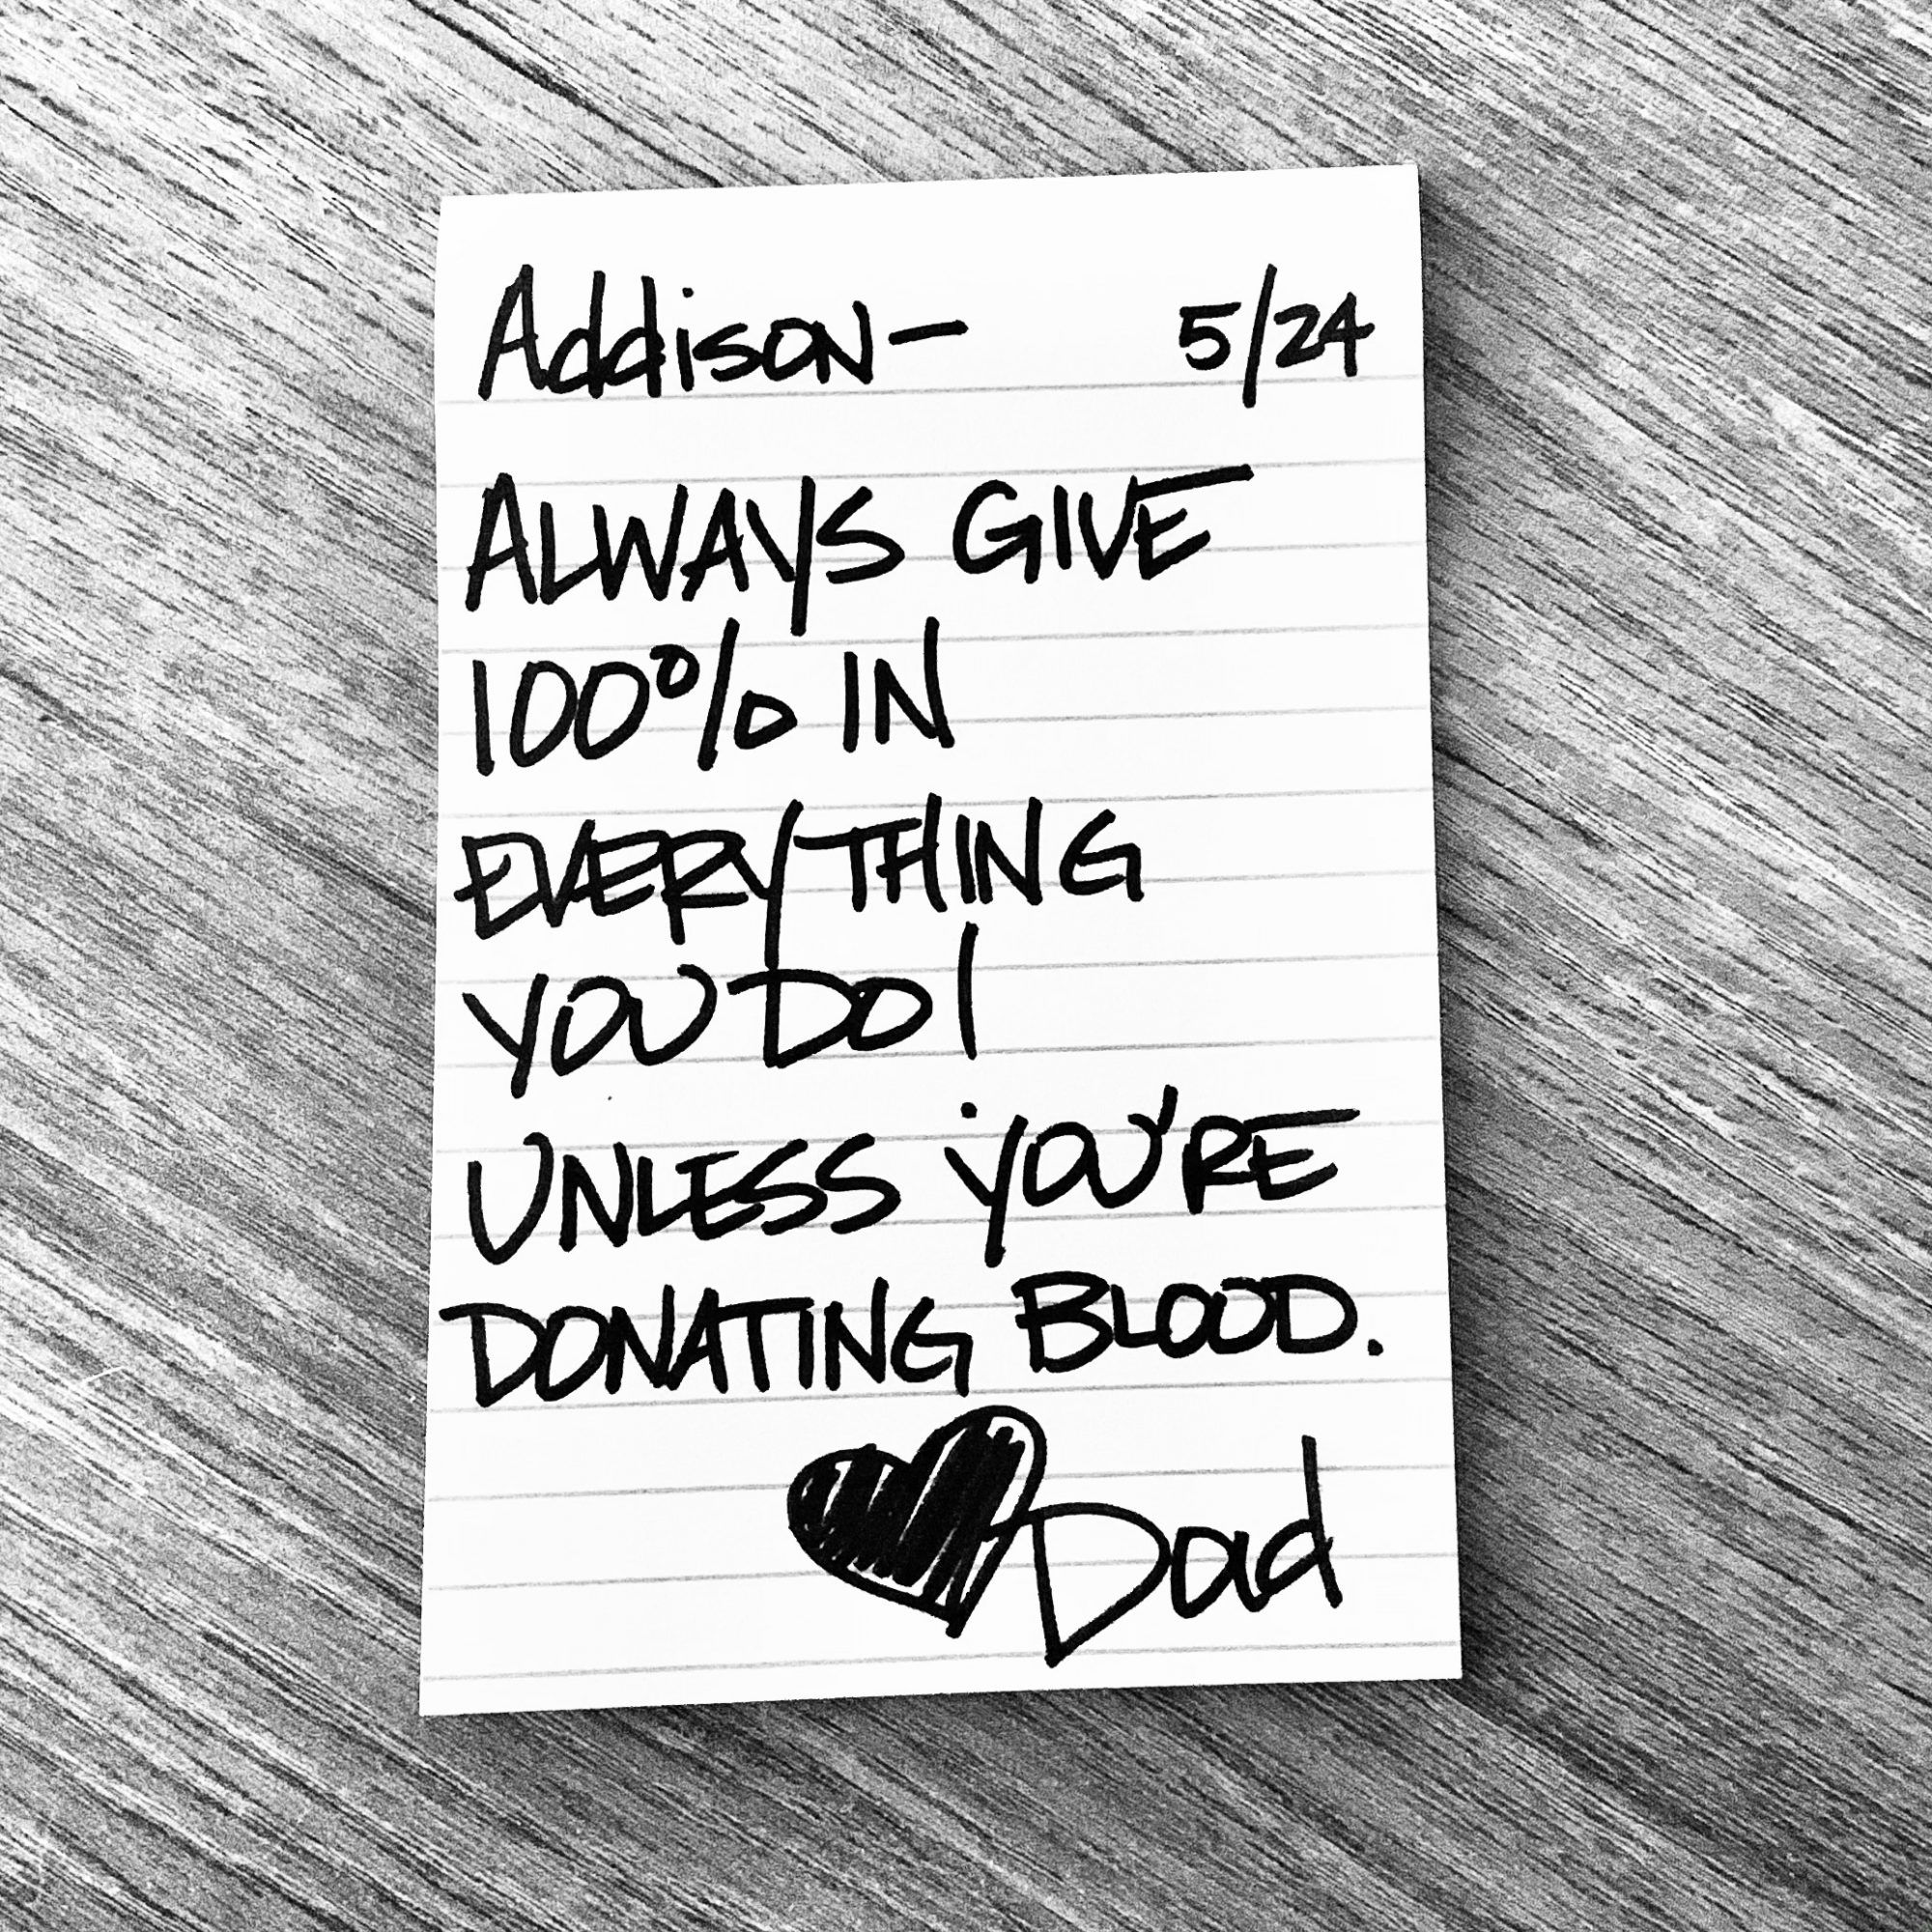 Dad Lunch Note